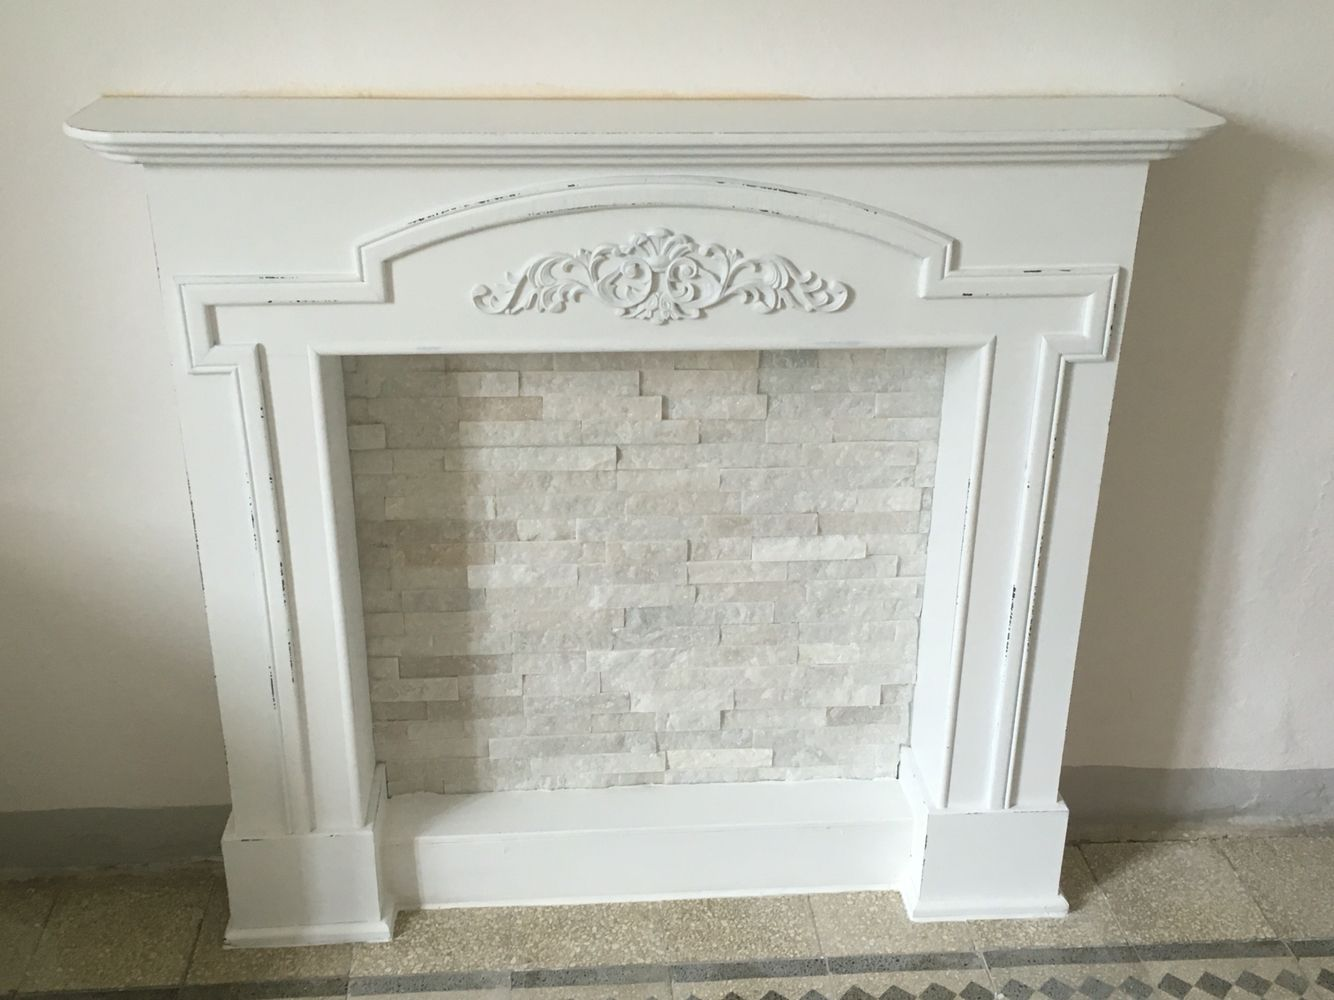 Finto Caminetto In Stile Shabby Fai Da Te Shabby Chic Fireplace Faux Fireplace Diy Fireplace Mantel Decor